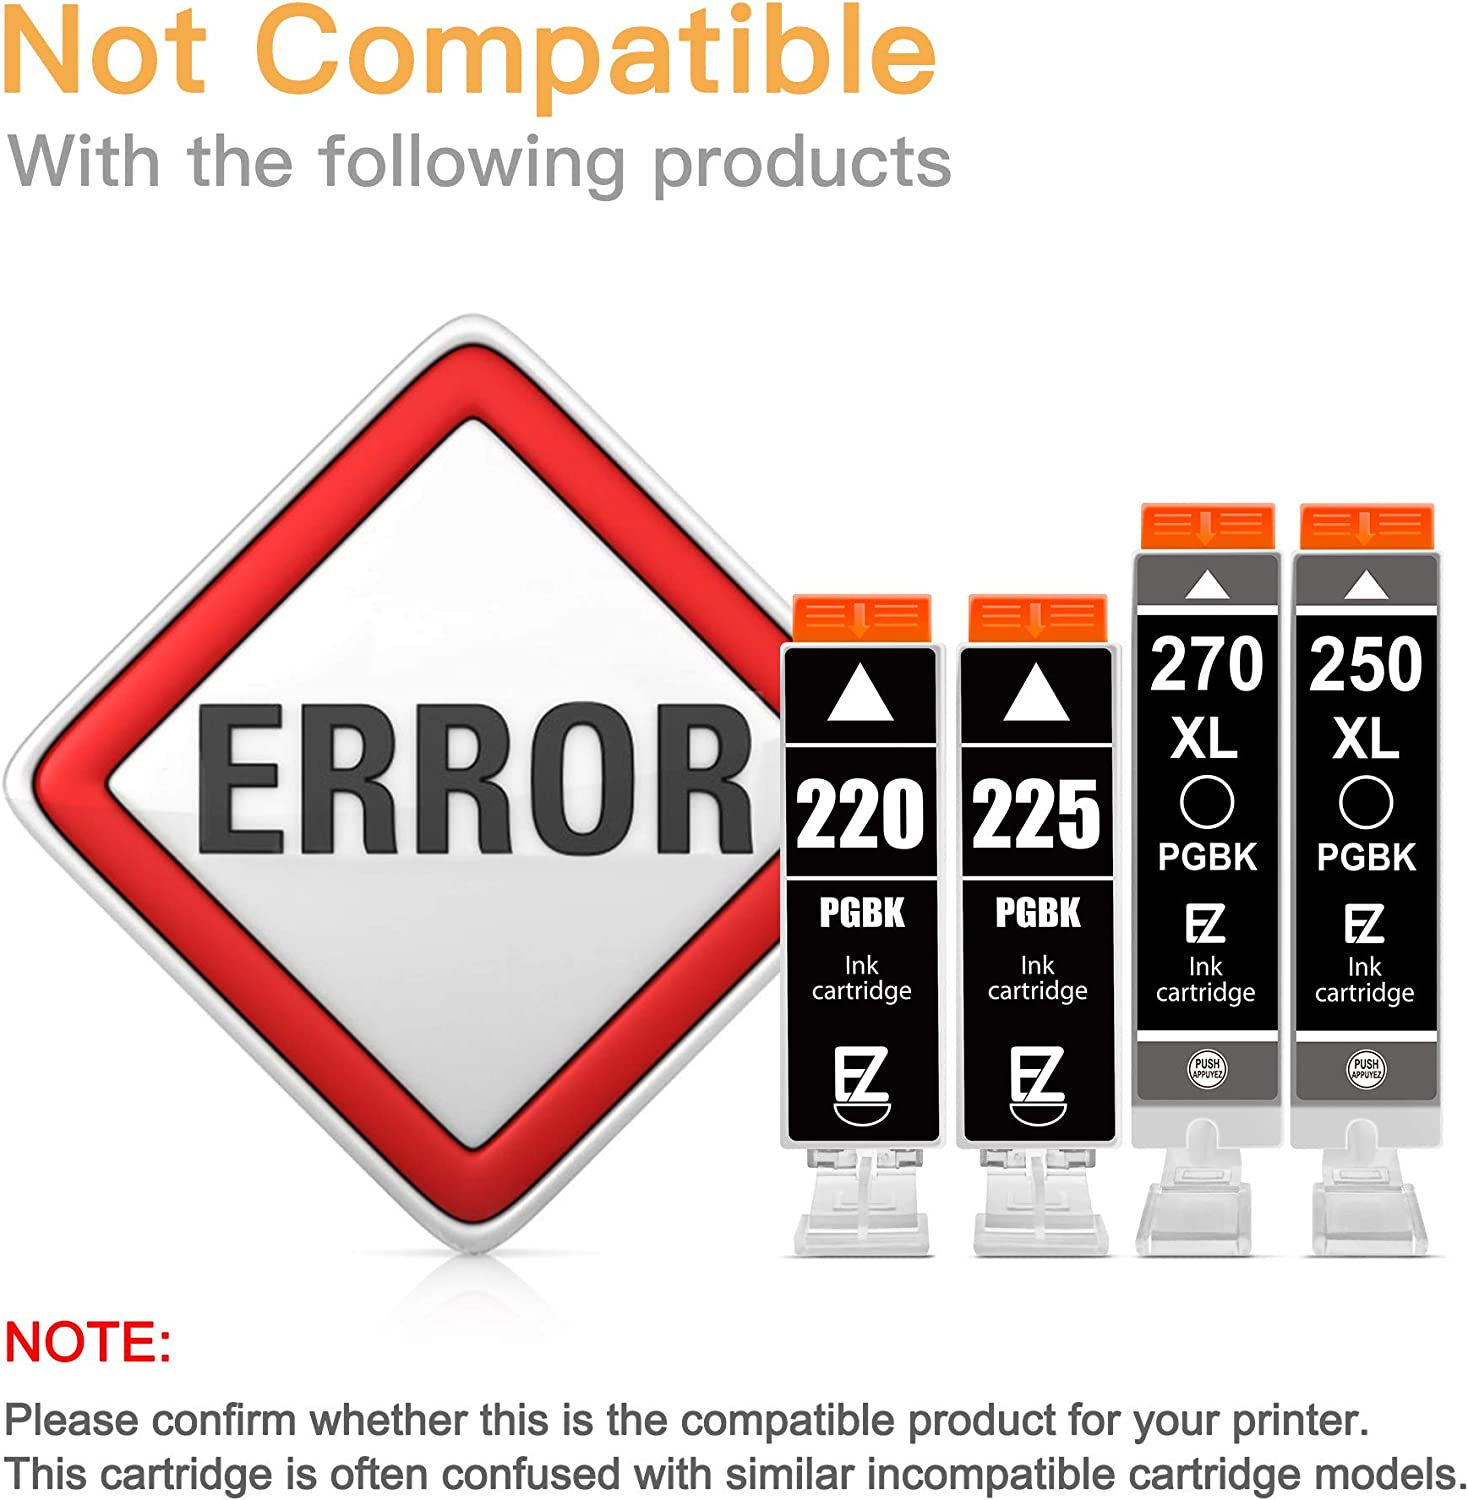 E-Z Ink (TM) Compatible Ink Cartridge Replacement for Canon PGI-280XXL CLI-281XXL 280 XXL 281 XXL for PIXMA TR7520 TR8520 TS6120 TS6220 TS8120 TS8220 TS9120 TS9520 TS6320 TS9521C Printer (5 Pack): Office Products